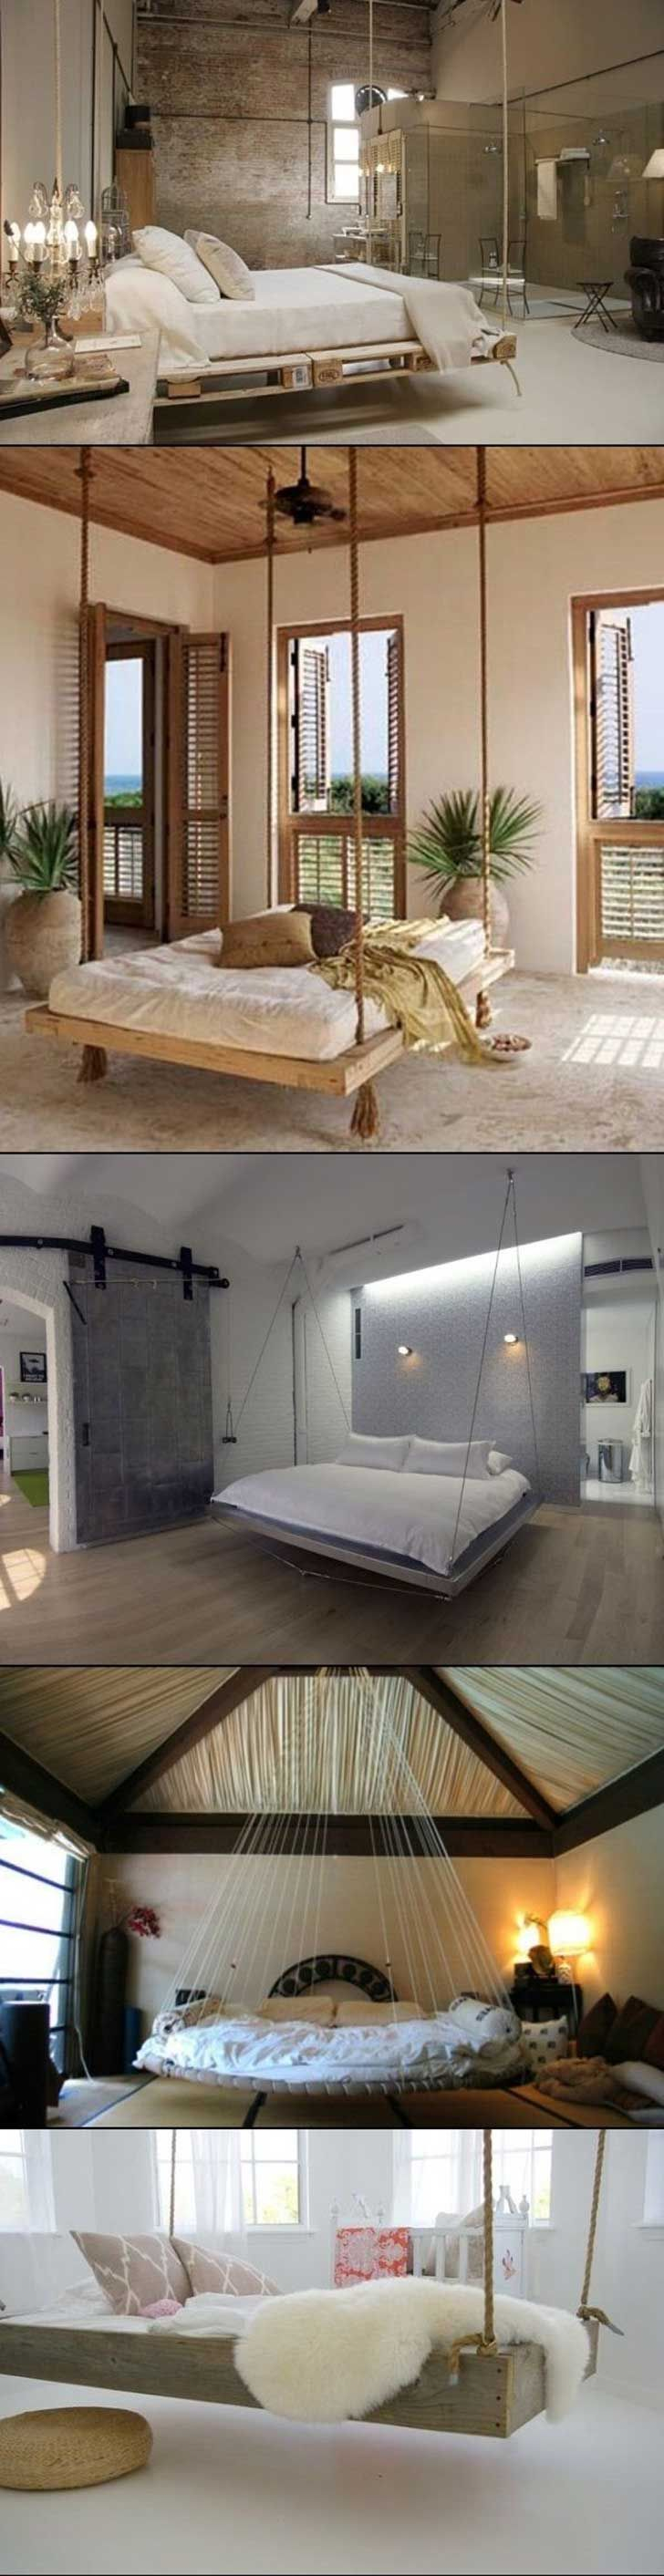 Creatively-Recycling-Ideas-Top-20-DIY-Pallet-Beds-homesthetics-18                                                                                                                                                                                 Más